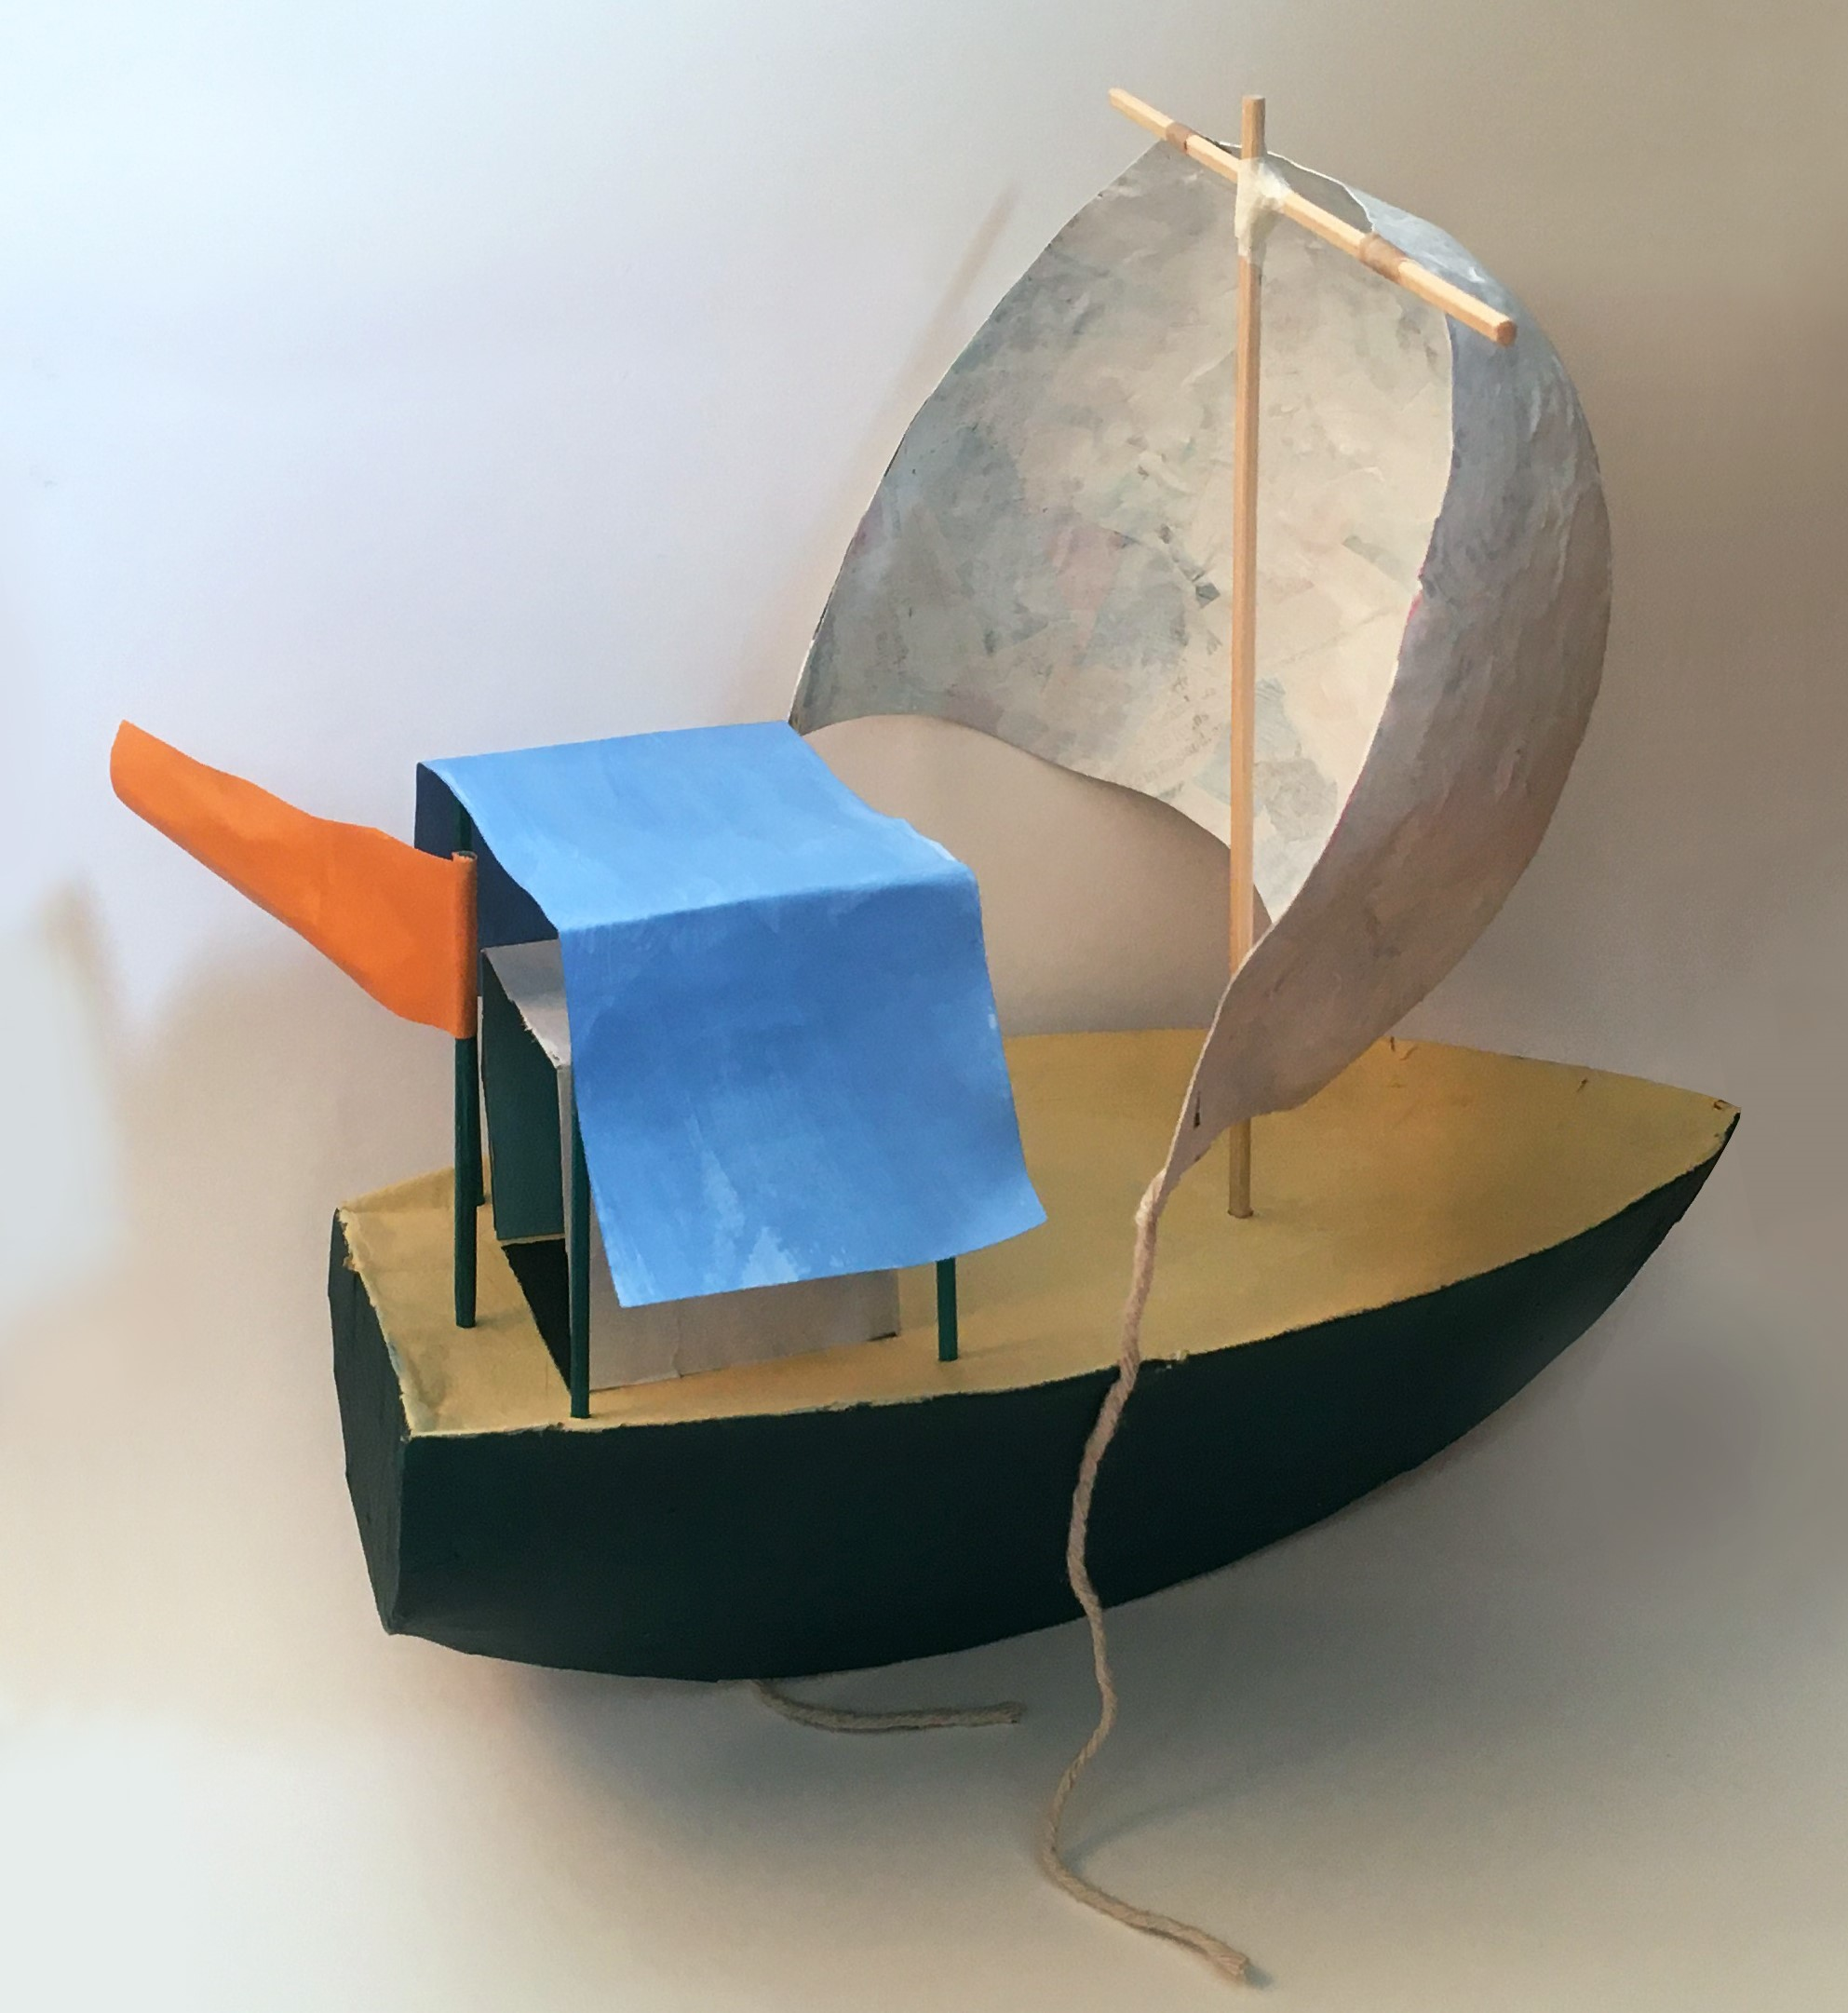 Model boat based on Victor Willing's 'Night' (1978)